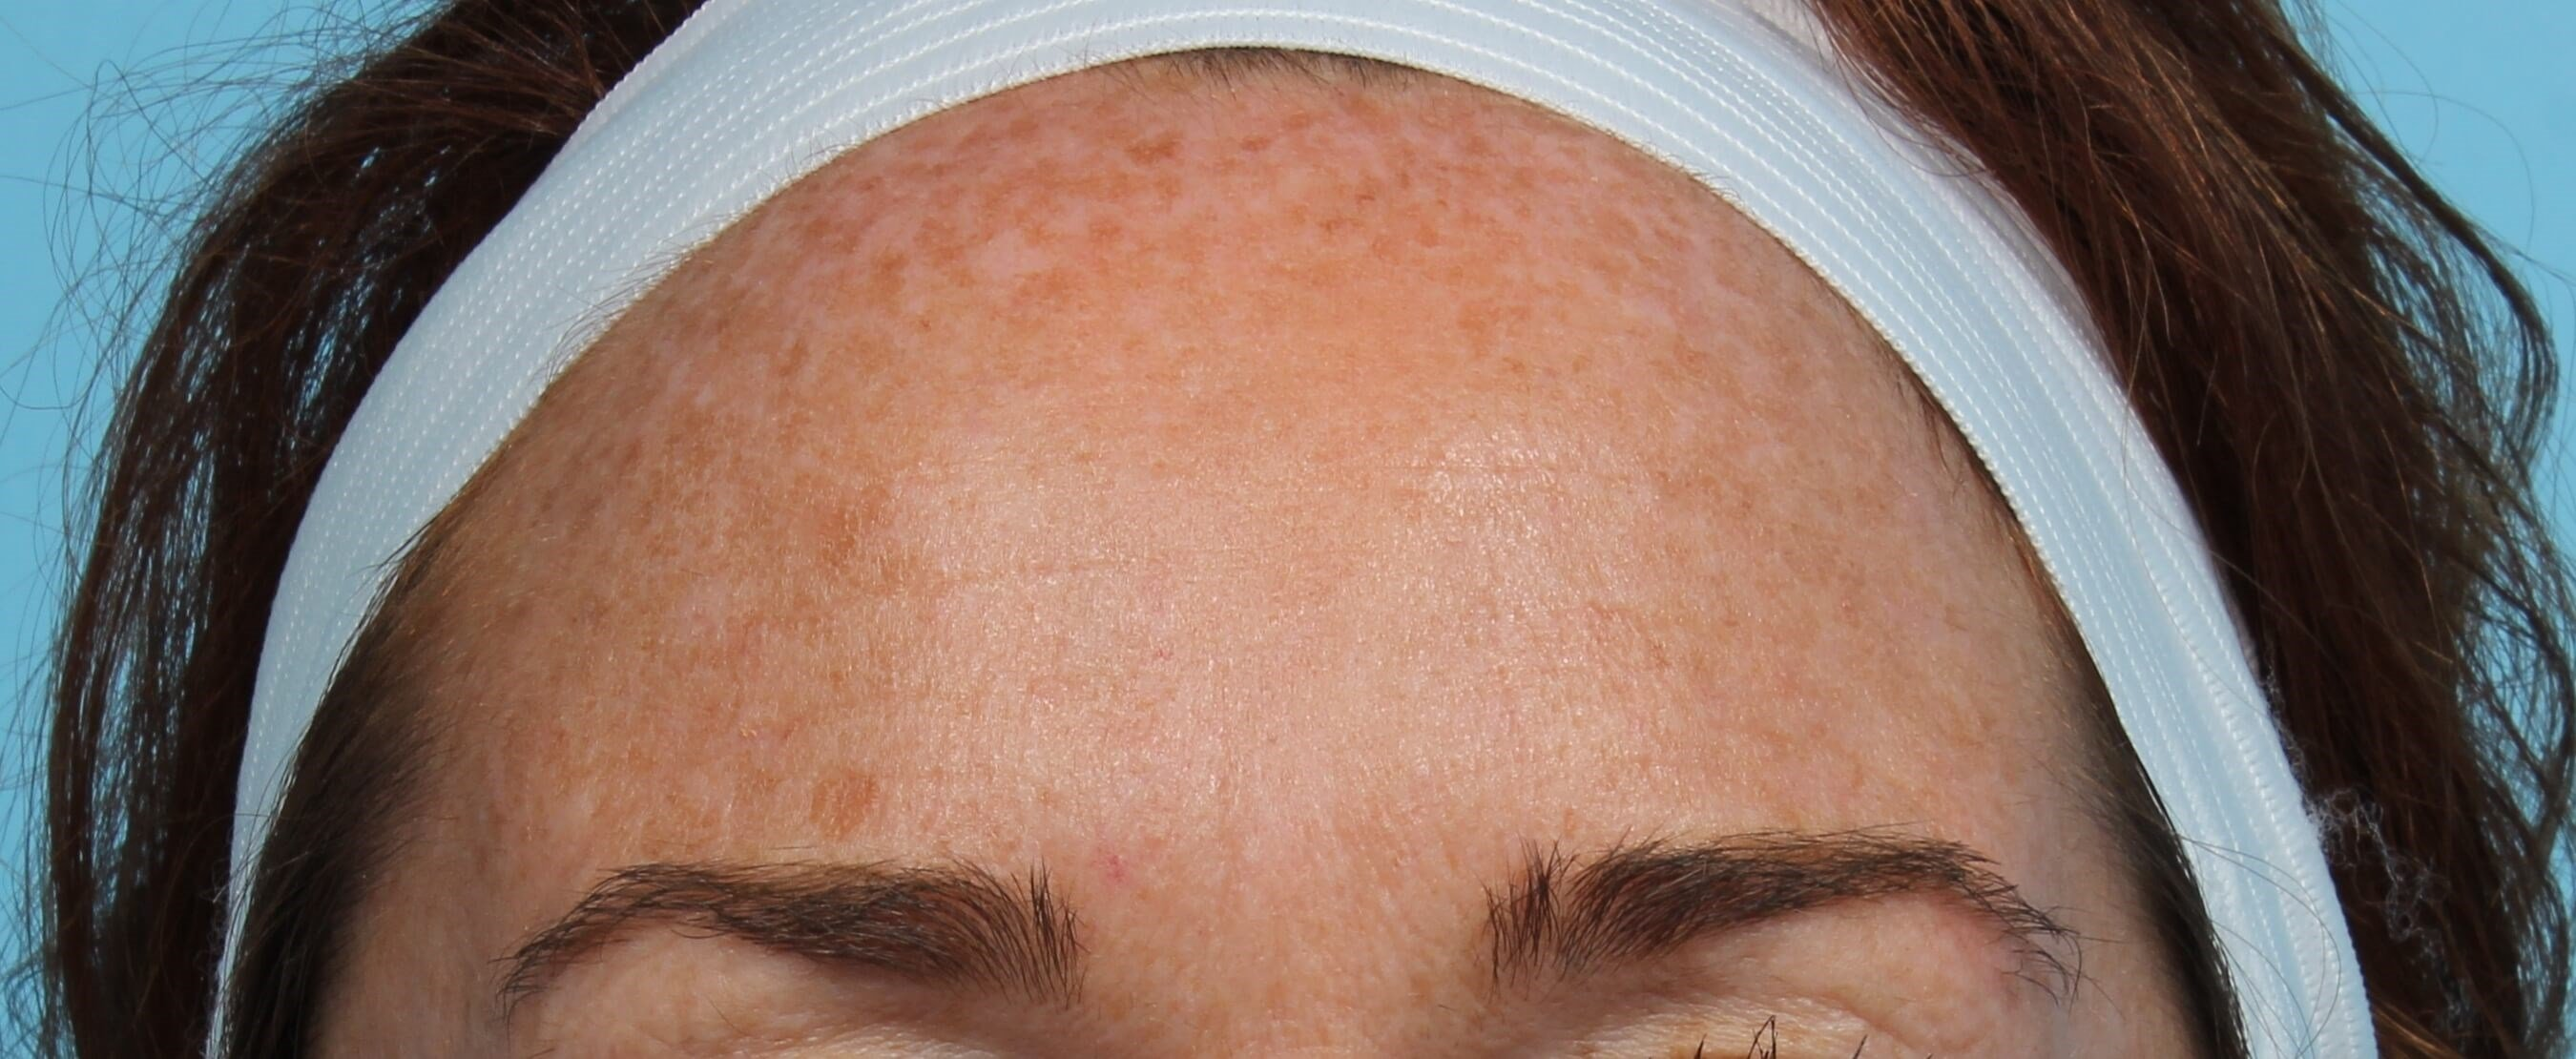 Forehead after IPL Laser Before